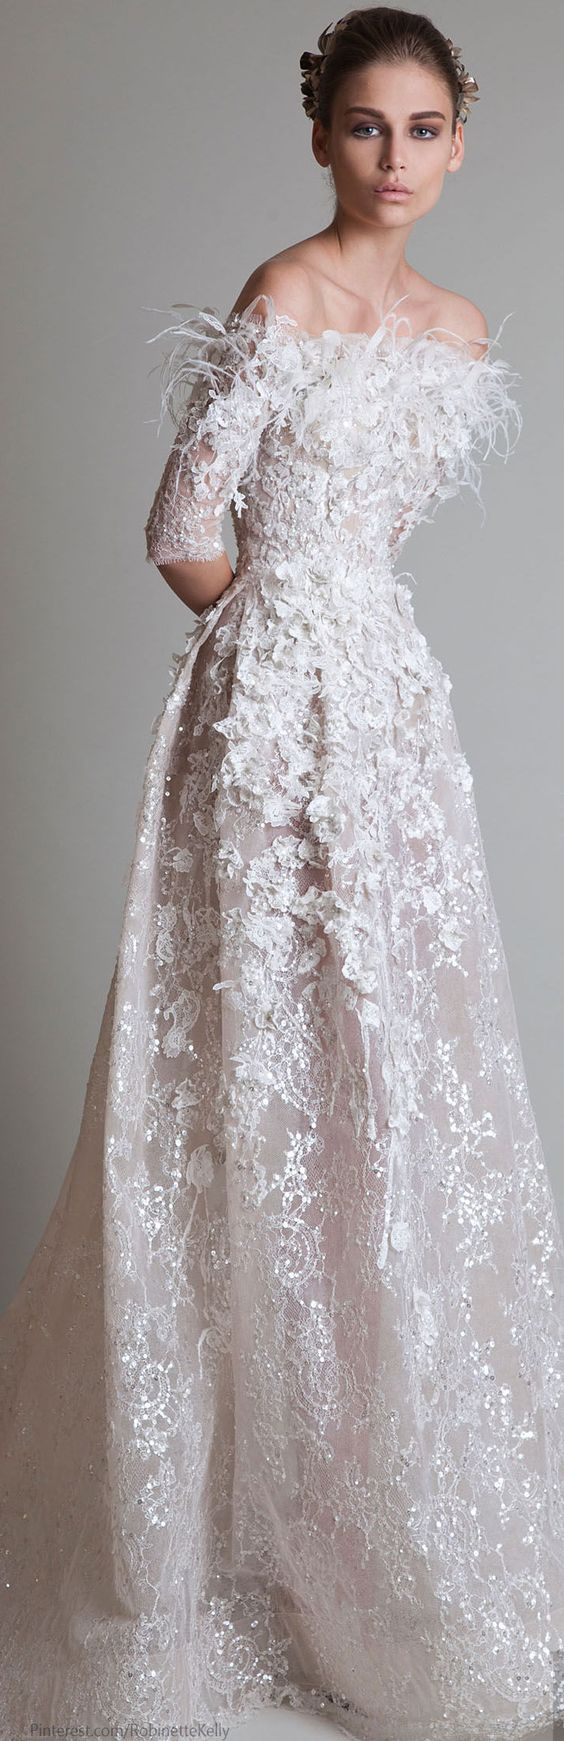 Krikor jabotian couture 2014 feather and beaded wedding for Feather wedding dress davids bridal